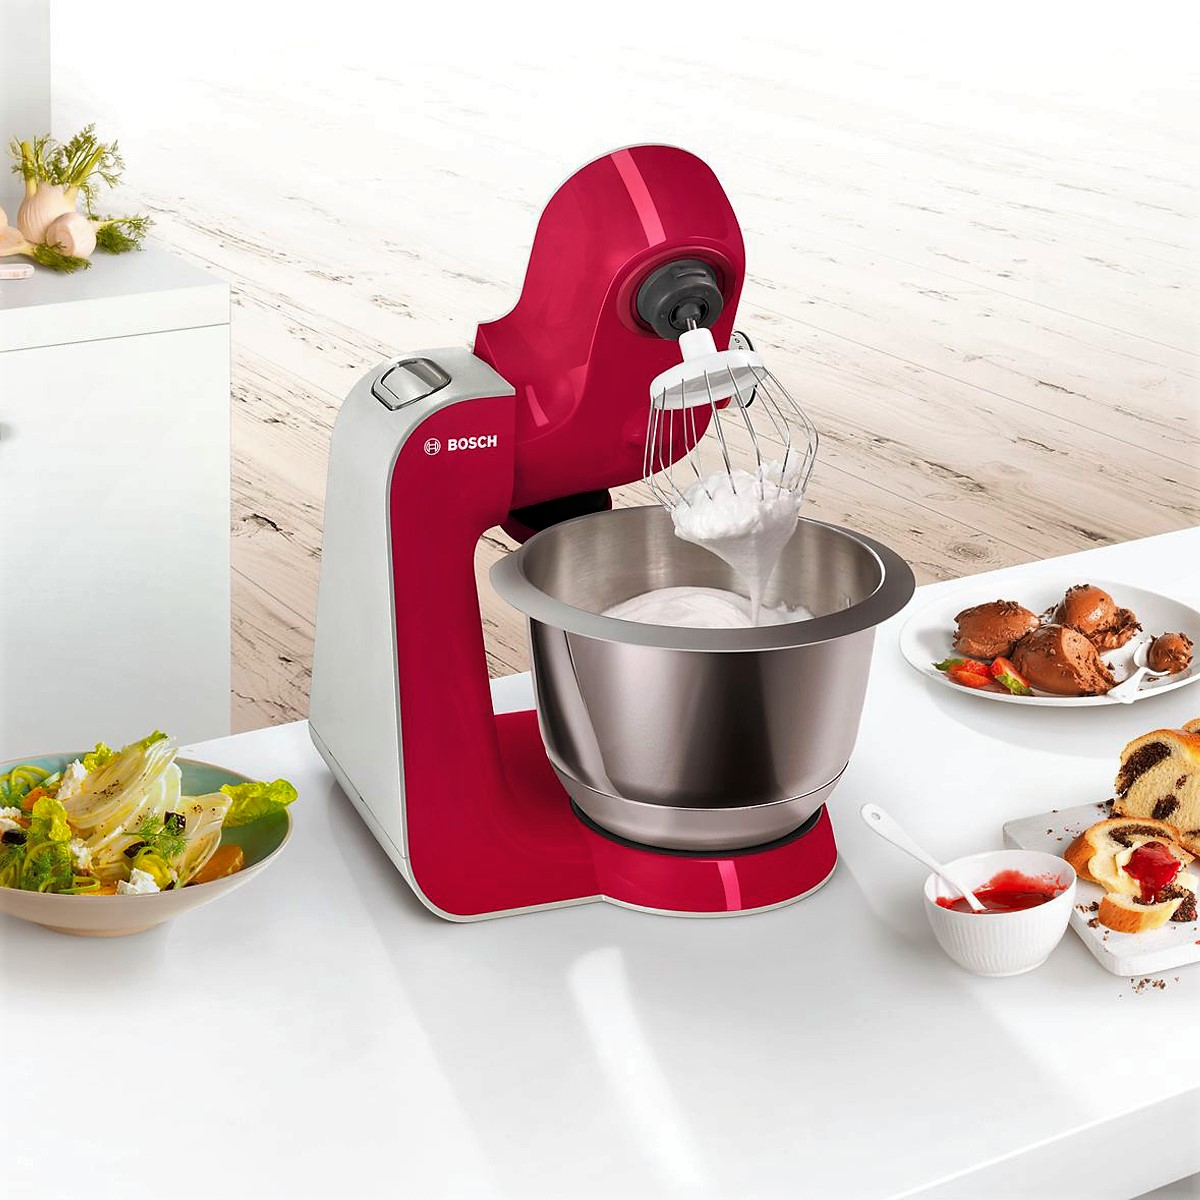 Bosch - Kitchen Machine MUM5 Styline Colour red diamond silver 3